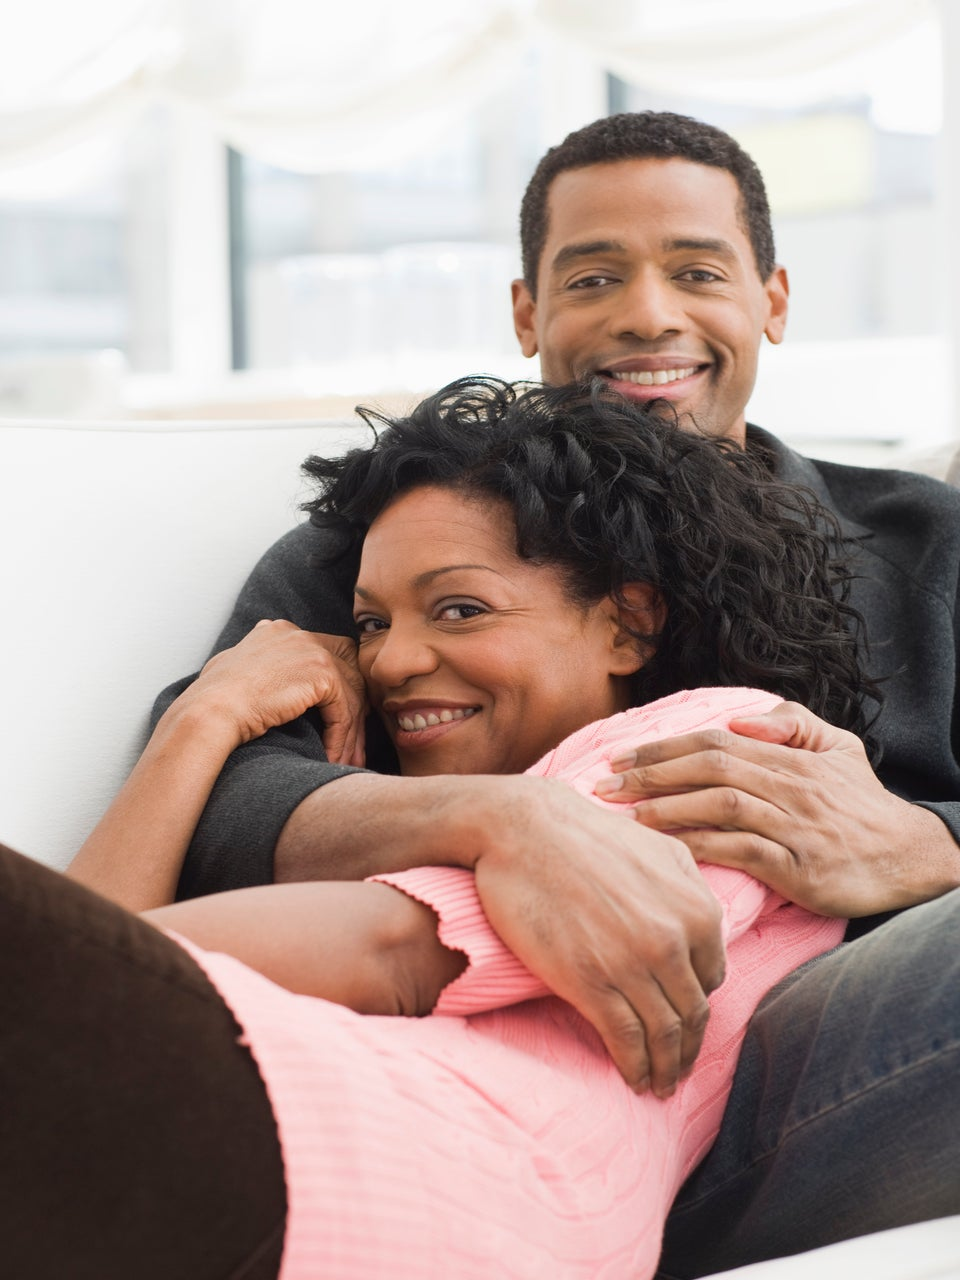 The Write or Die Chick: Making a Man Happy Doesn't Mean Being His Flunkie